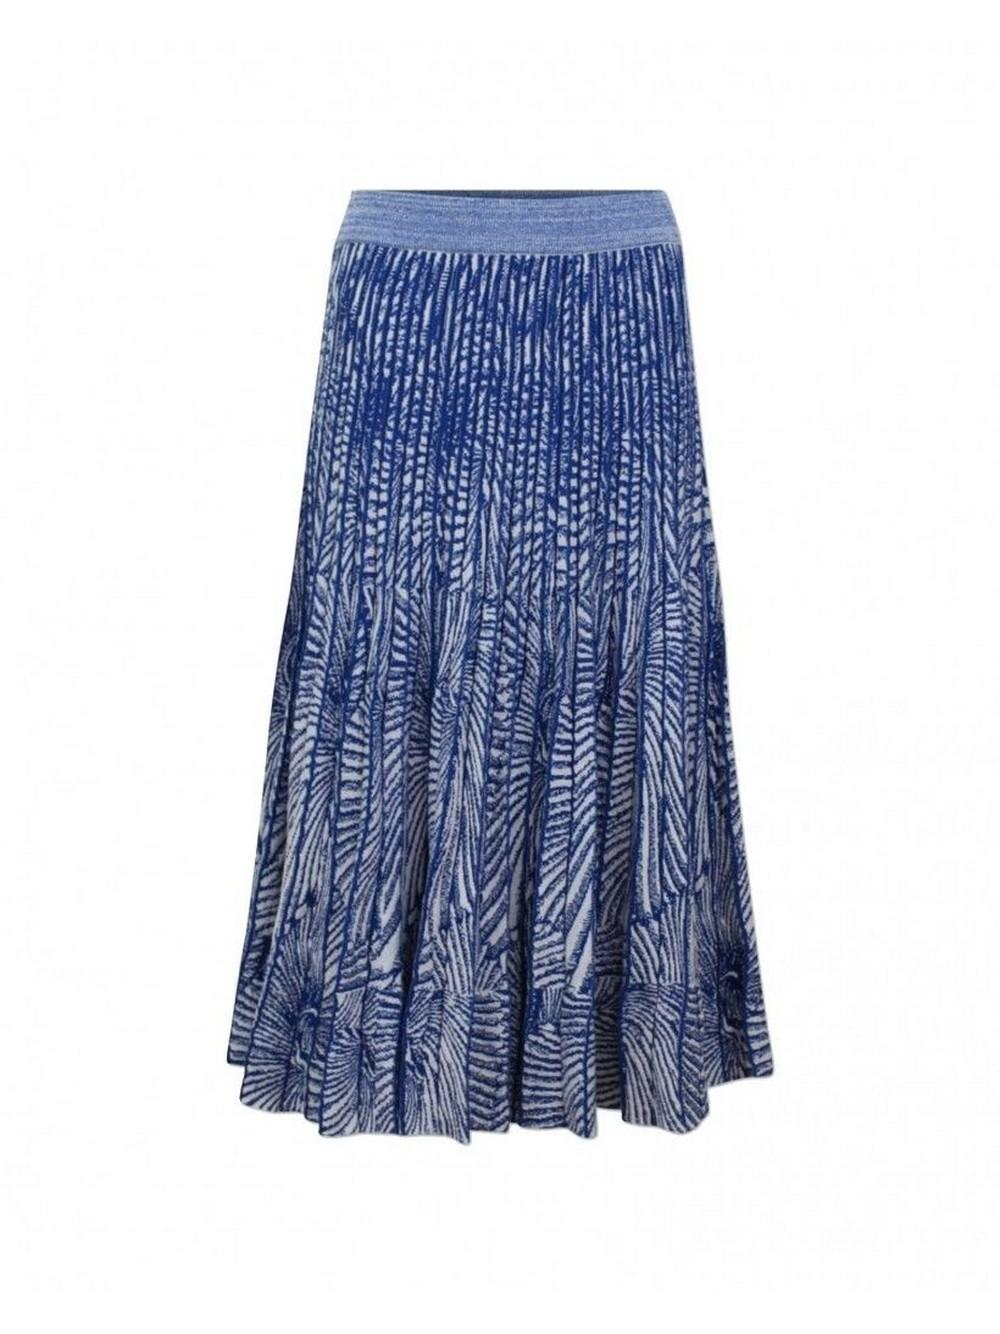 Cyrilla Shell Print Knit Midi Skirt Item # 21131